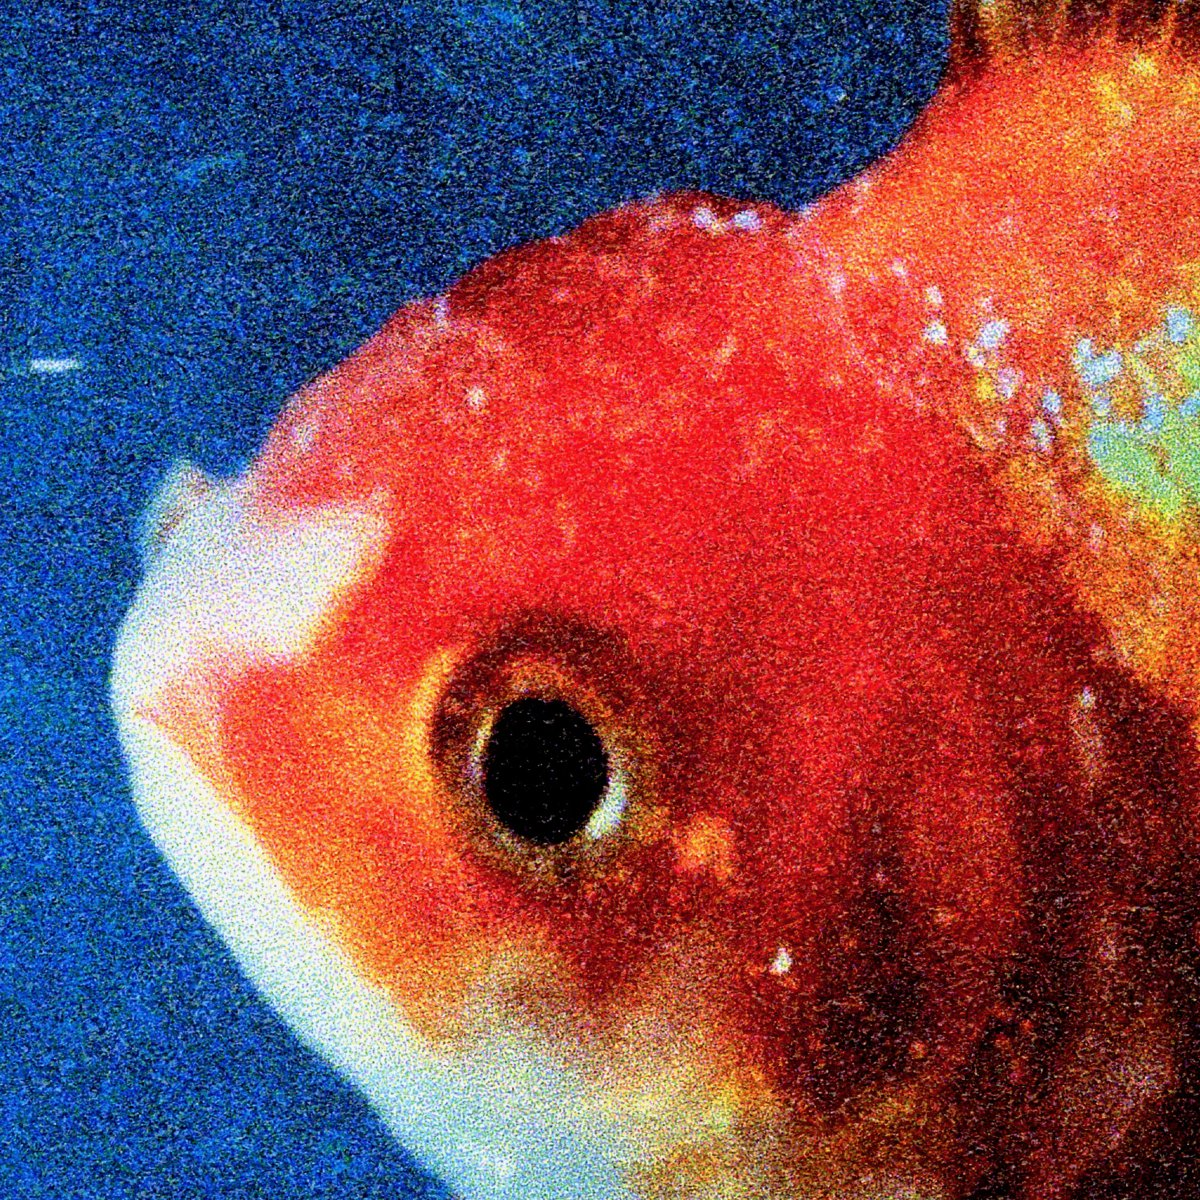 Big Fish Theory by @vincestaples is out now ✊ https://t.co/yjBEpknQ42...